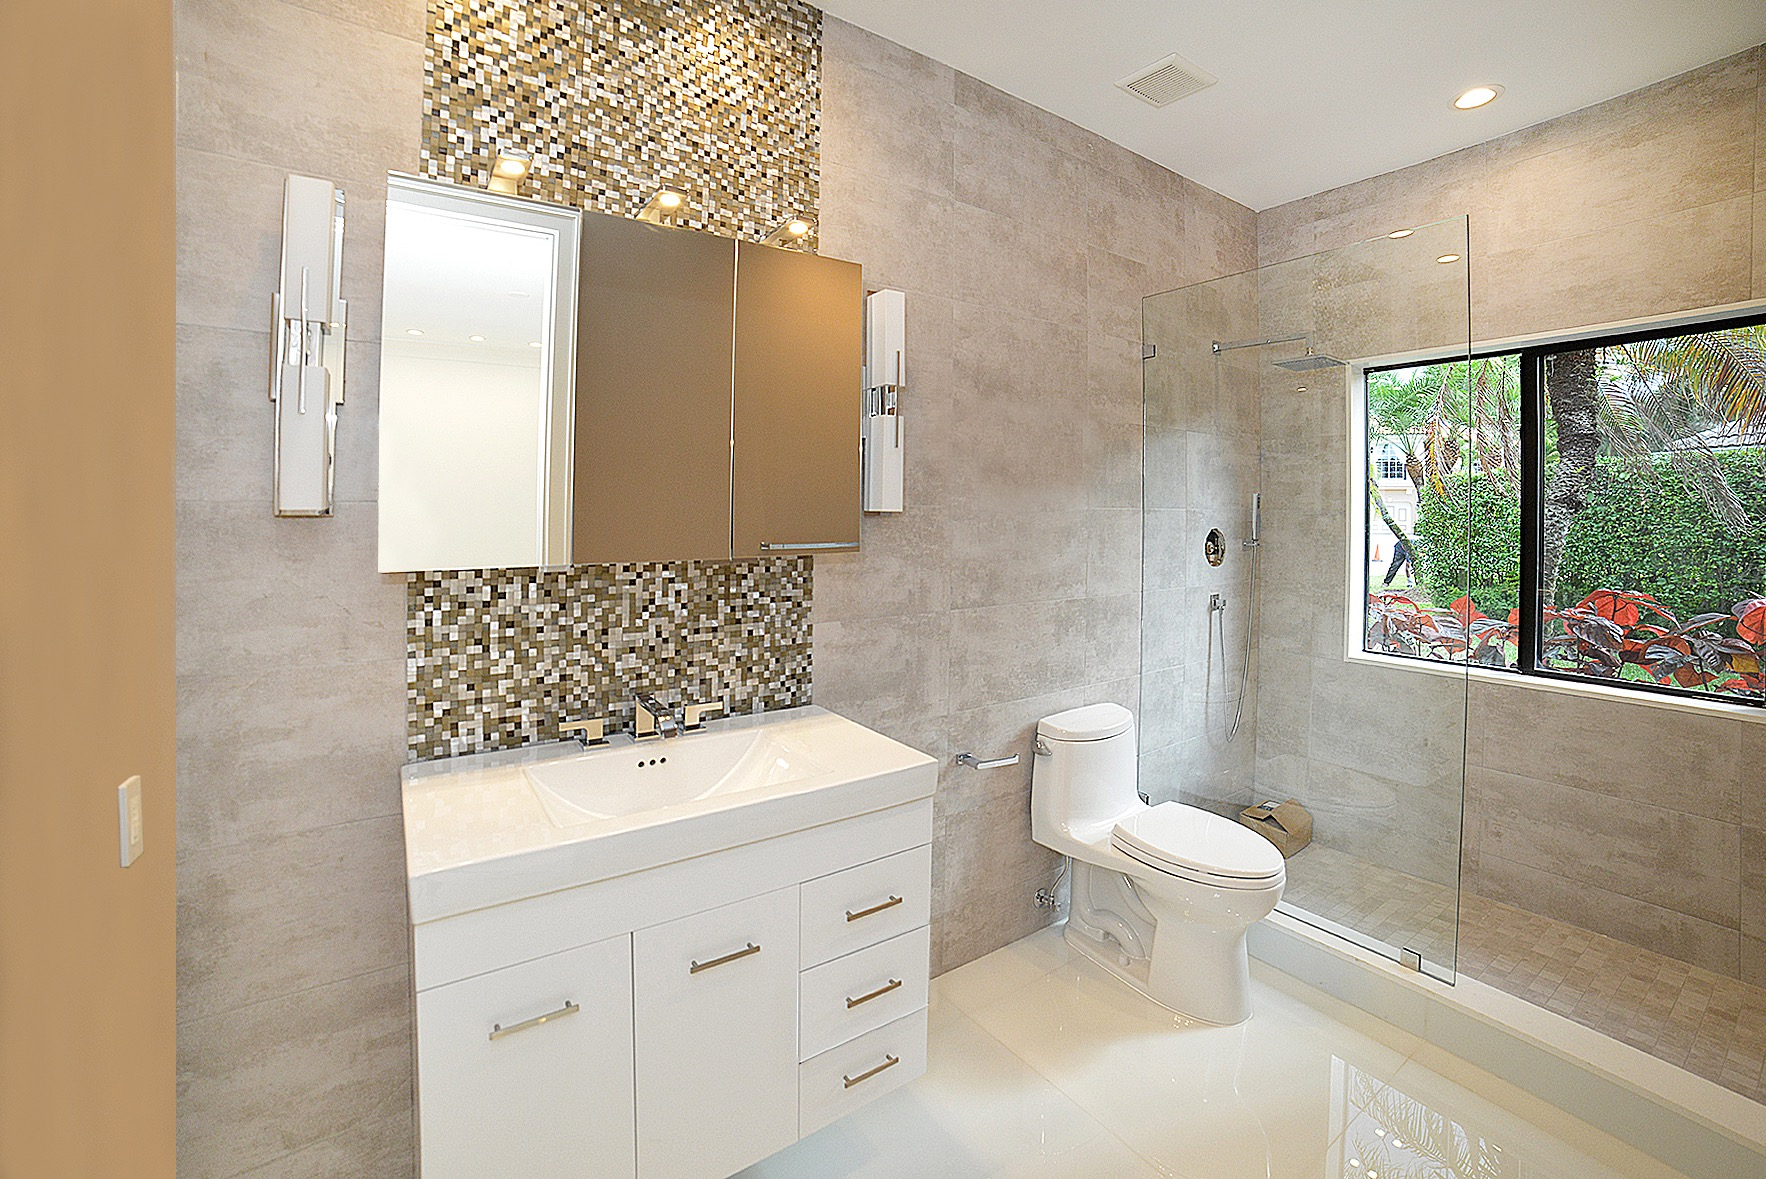 mag real estate & development construction general contractor builder renovation south florida boca raton new custom luxury home for sale interior design st. andrews country club 7026 ayrshire lane 21.jpg